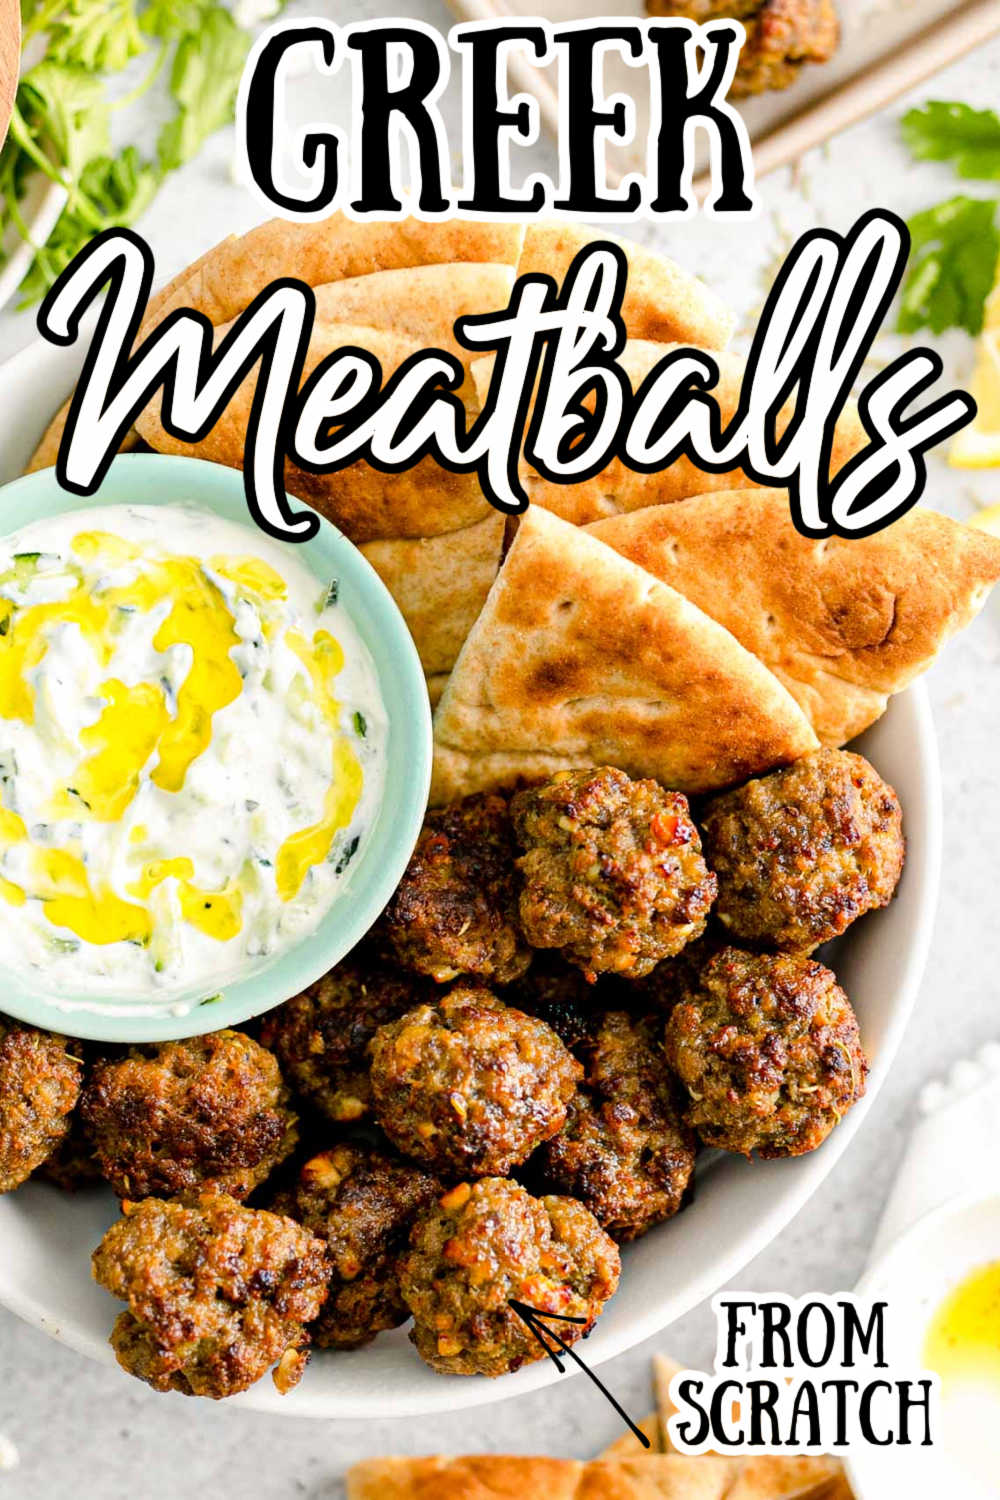 These Greek Meatballs are perfectly plump and loaded with authentic flavor using herbs and spices to pack into ground beef and served with pita bread and tzatziki sauce! via @sugarandsoulco